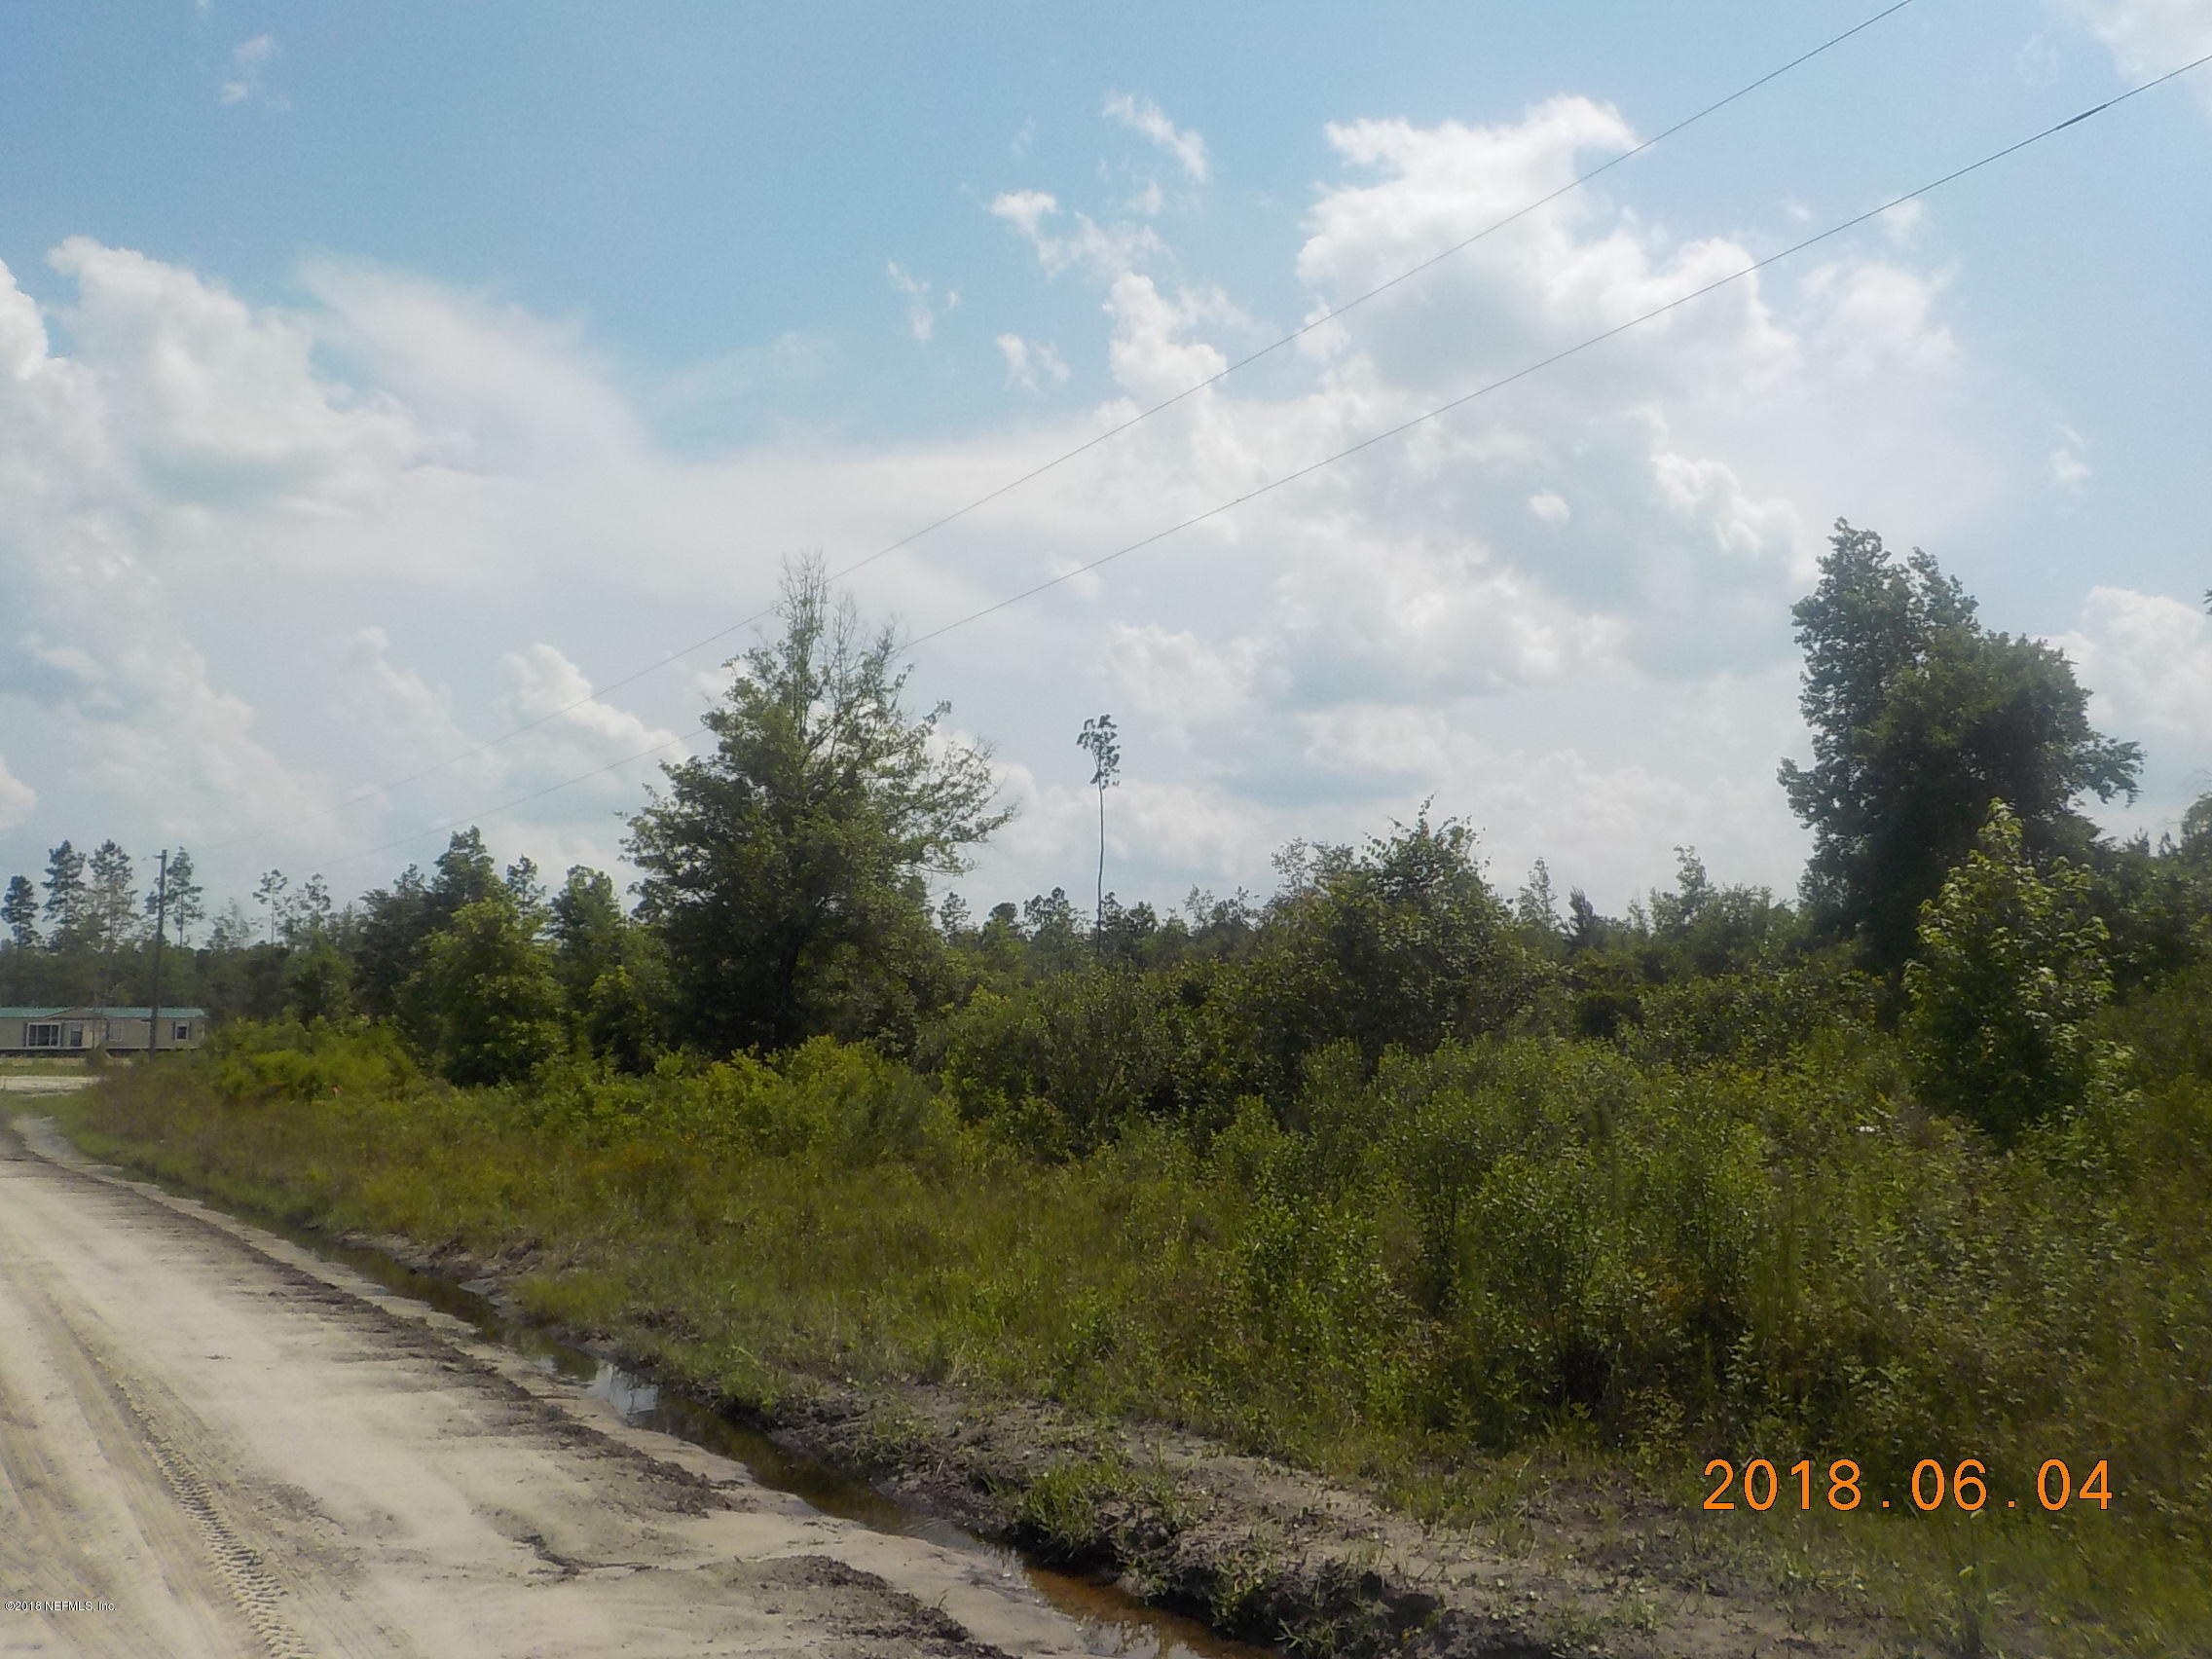 33 CEDAR CREEK FARMS, GLEN ST. MARY, FLORIDA 32040, ,Vacant land,For sale,CEDAR CREEK FARMS,940186